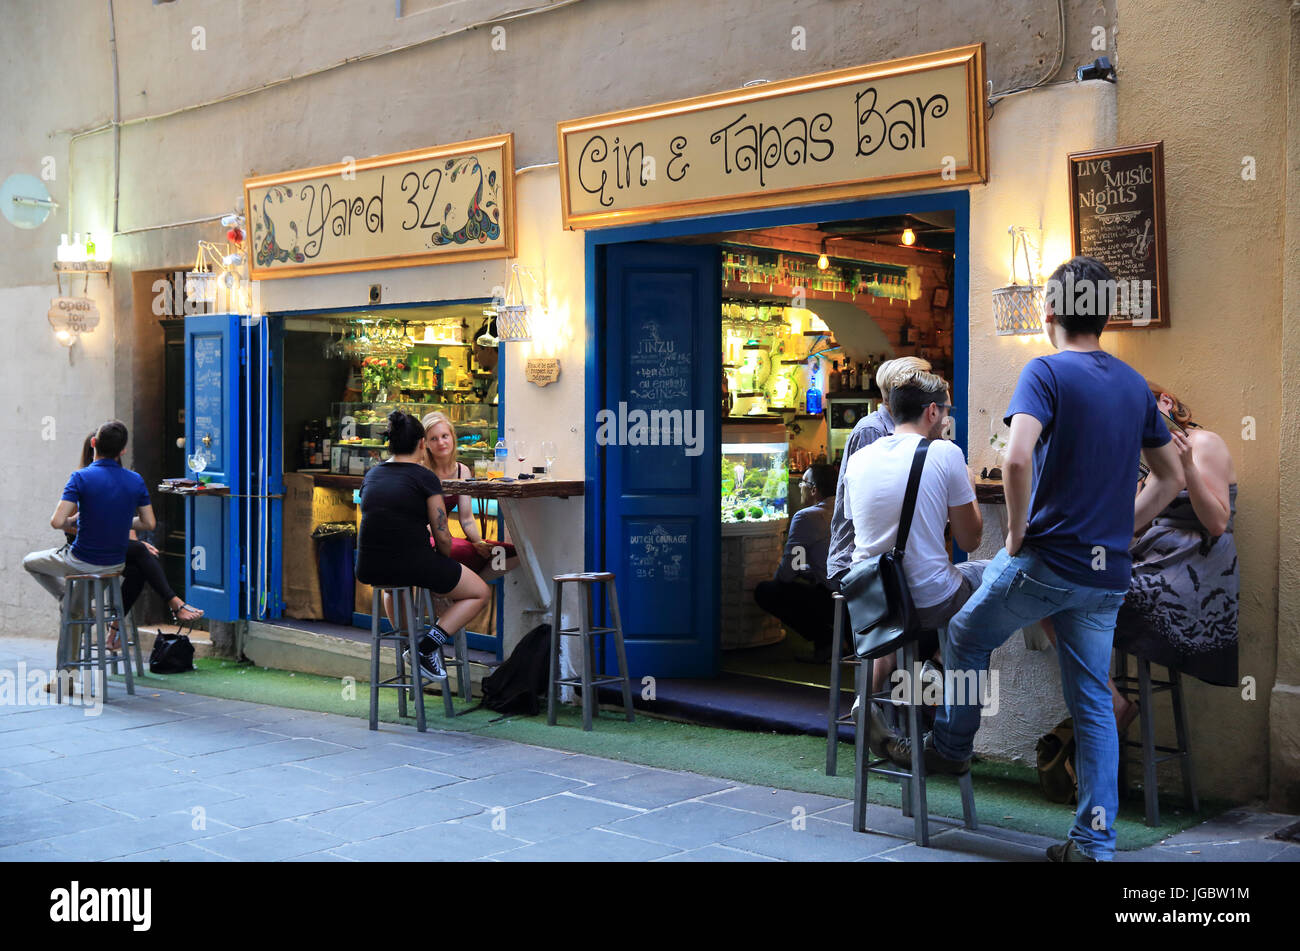 Trendy Yard 32 Gin & Tapas bar on the once notorious Strait Street, a backstreet in Valletta, Malta - Stock Image